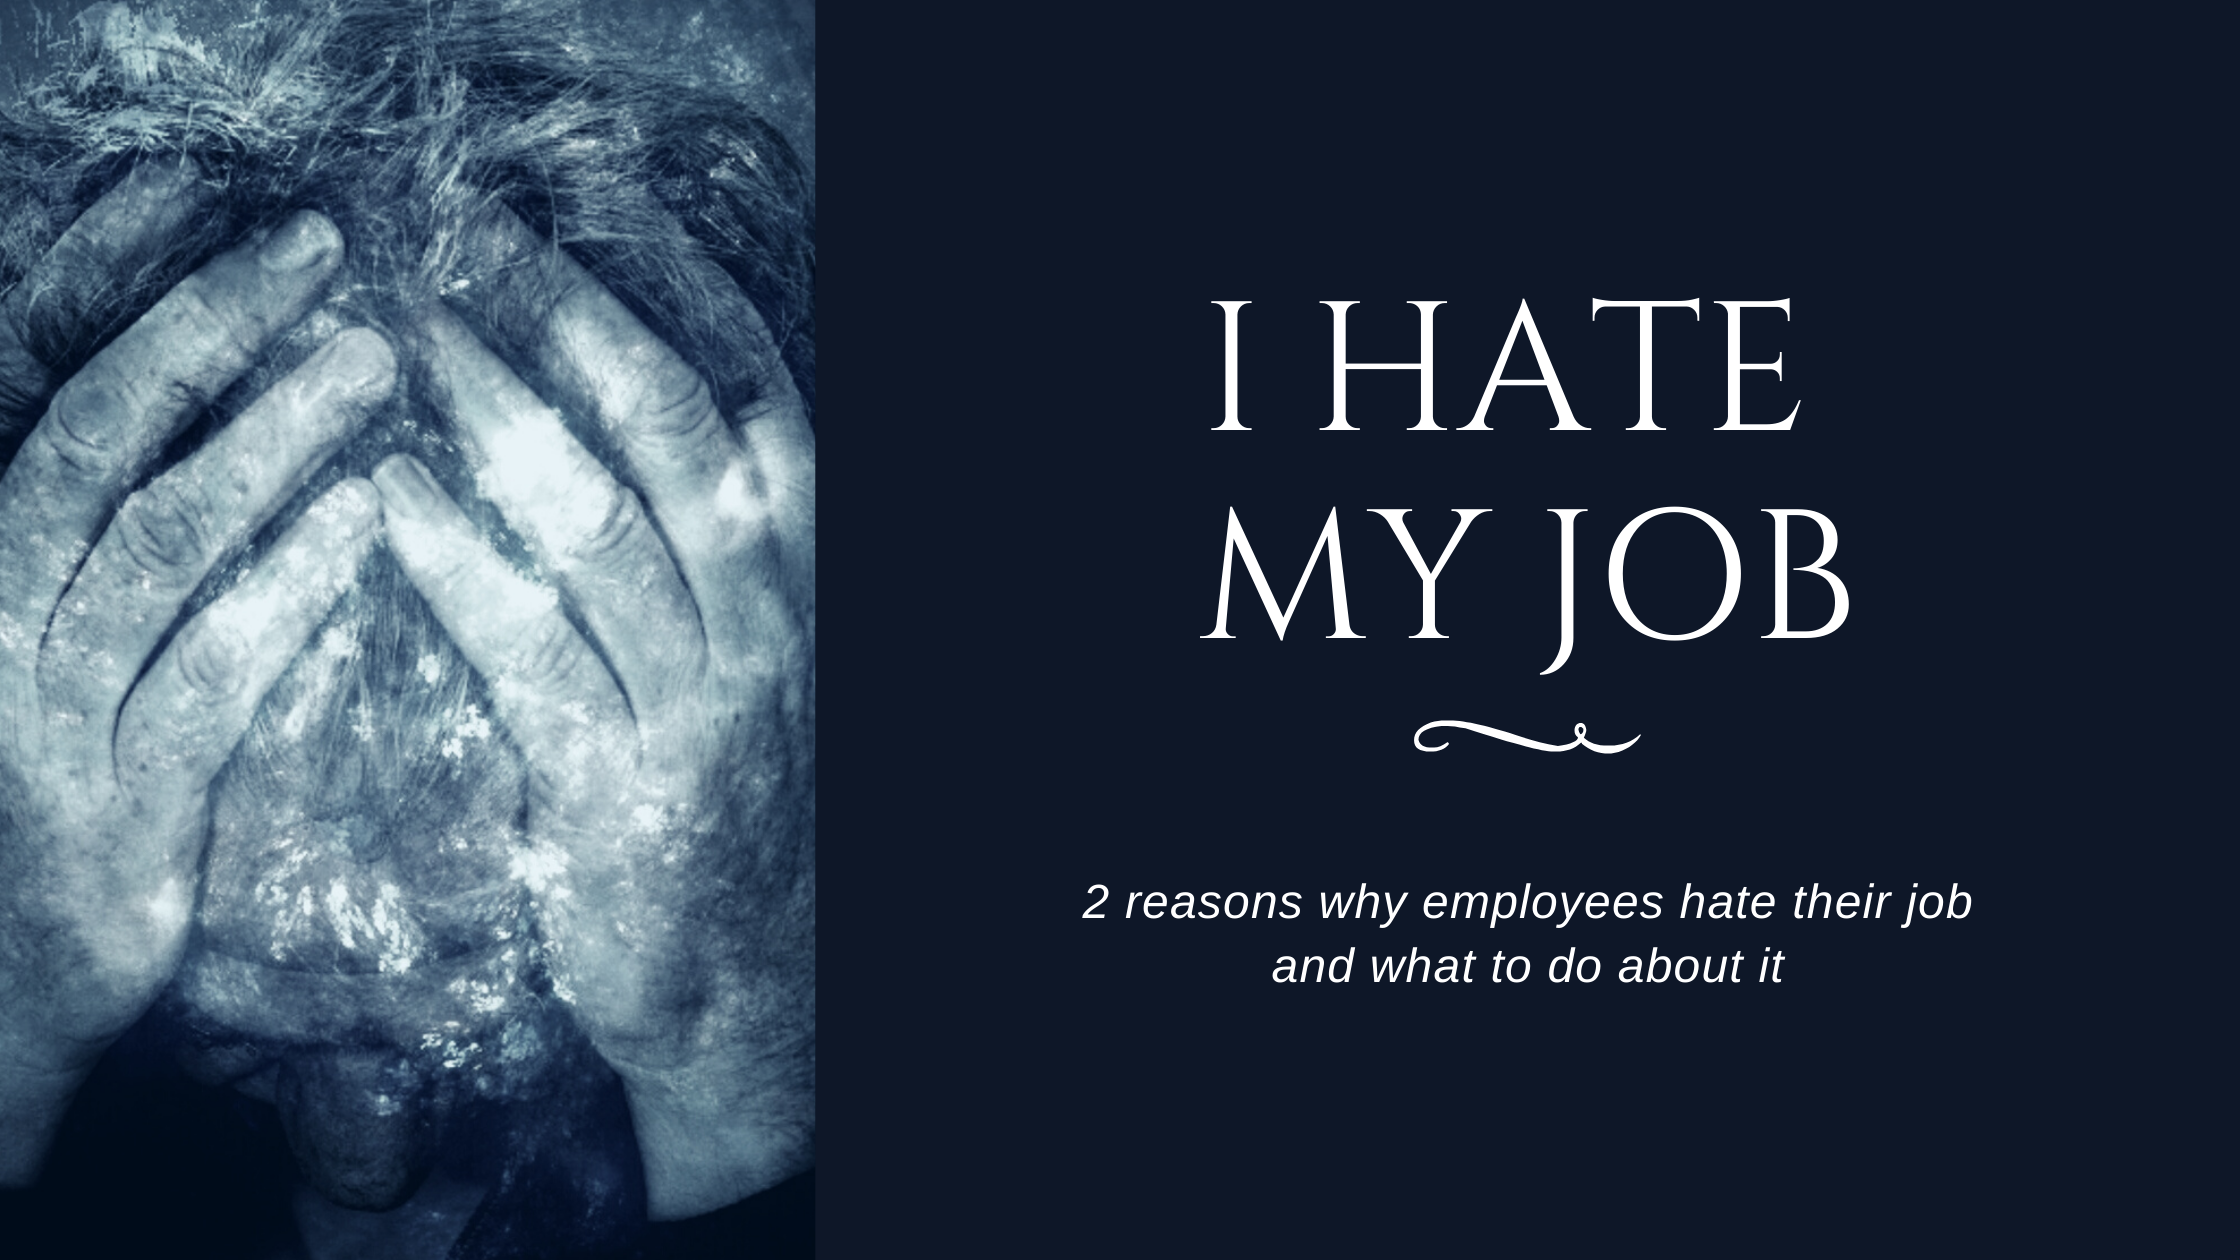 Why employees hate their job